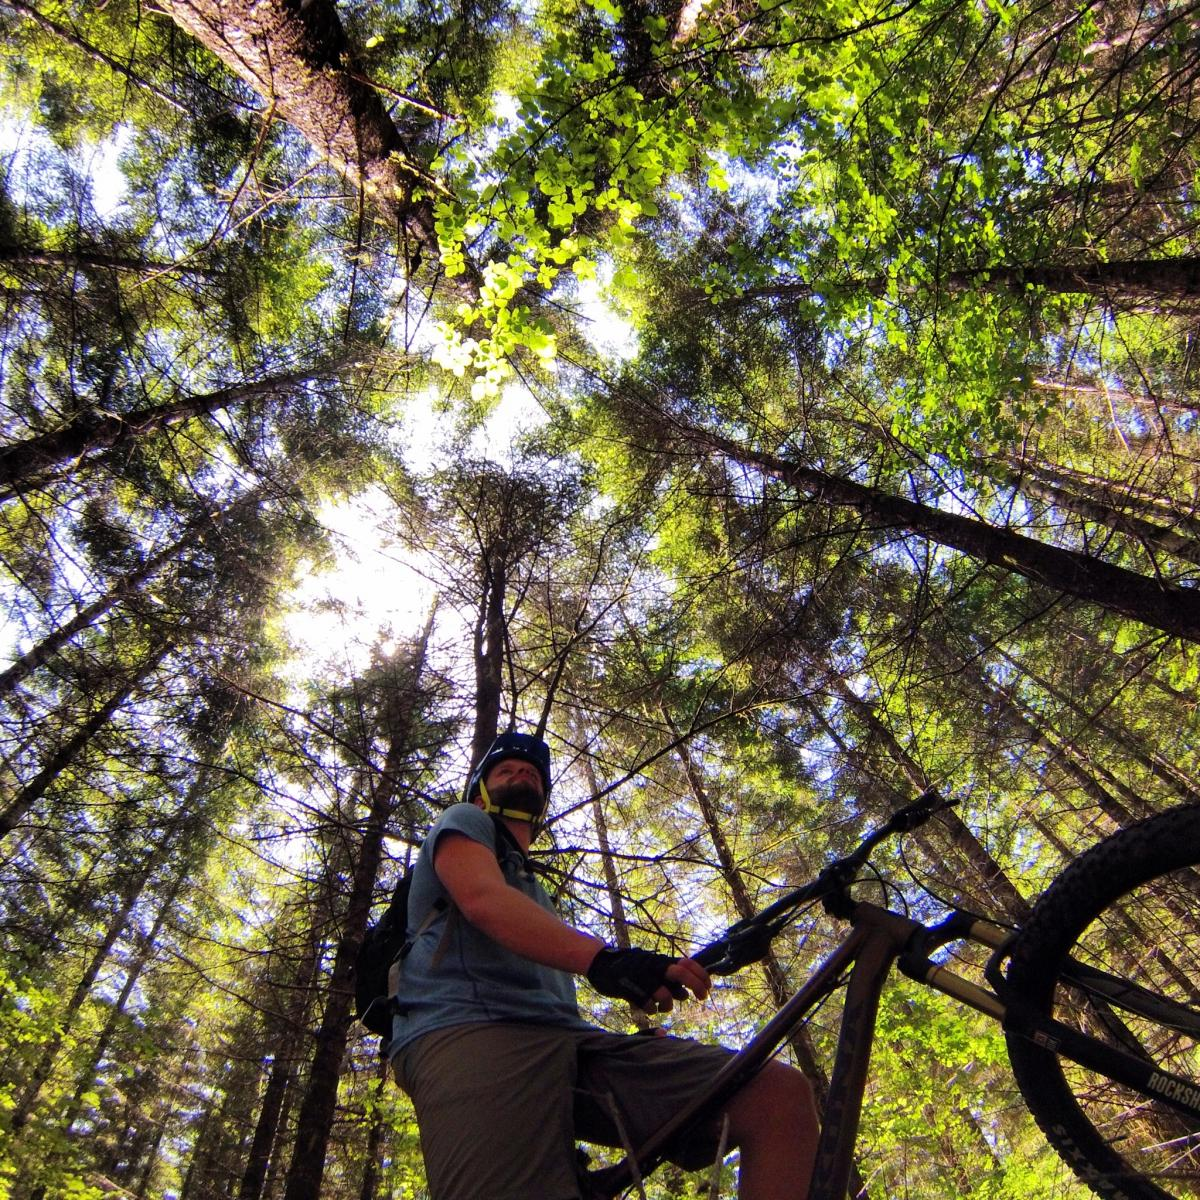 """""""Sometimes you just need to get lost..."""" Trail: Whypass, Eugene, Oregon. Photo: Gabriel Buhler"""